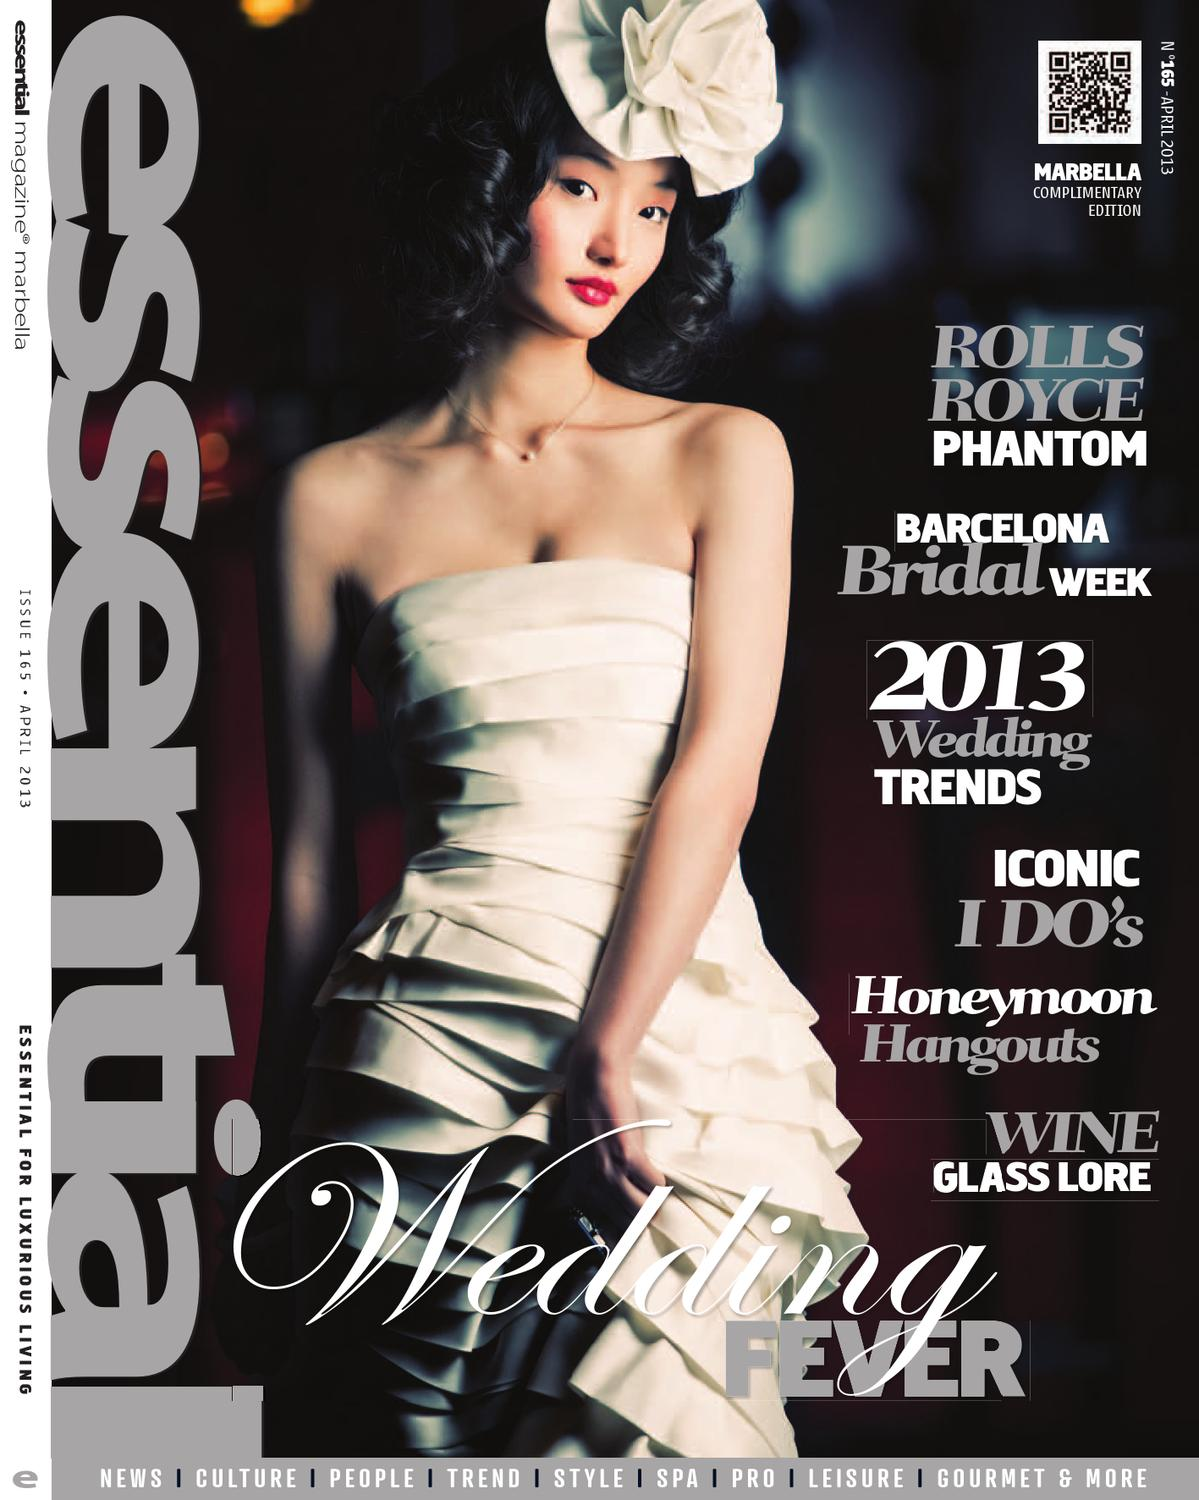 Ls Land Issue-32 (Thumbelina).Rar : Contents Contributed